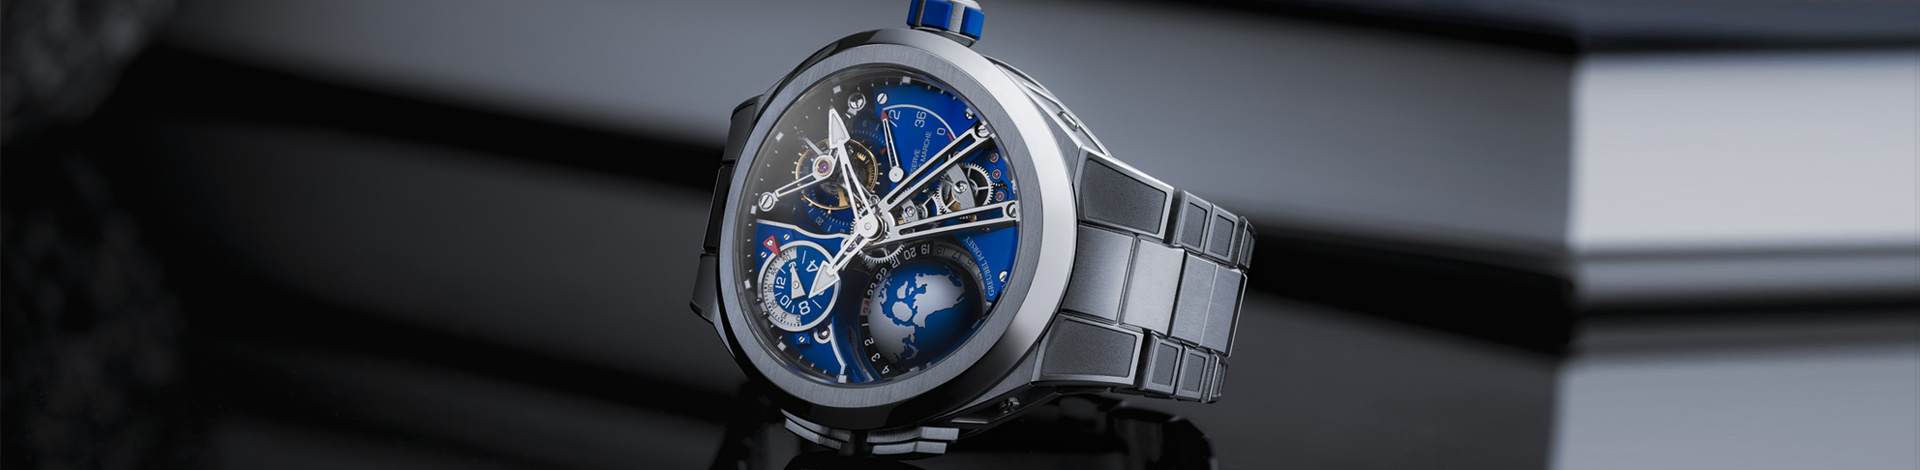 NEW GREUBEL FORSEY GMT SPORT - MAY 2021 NEWS article hero image